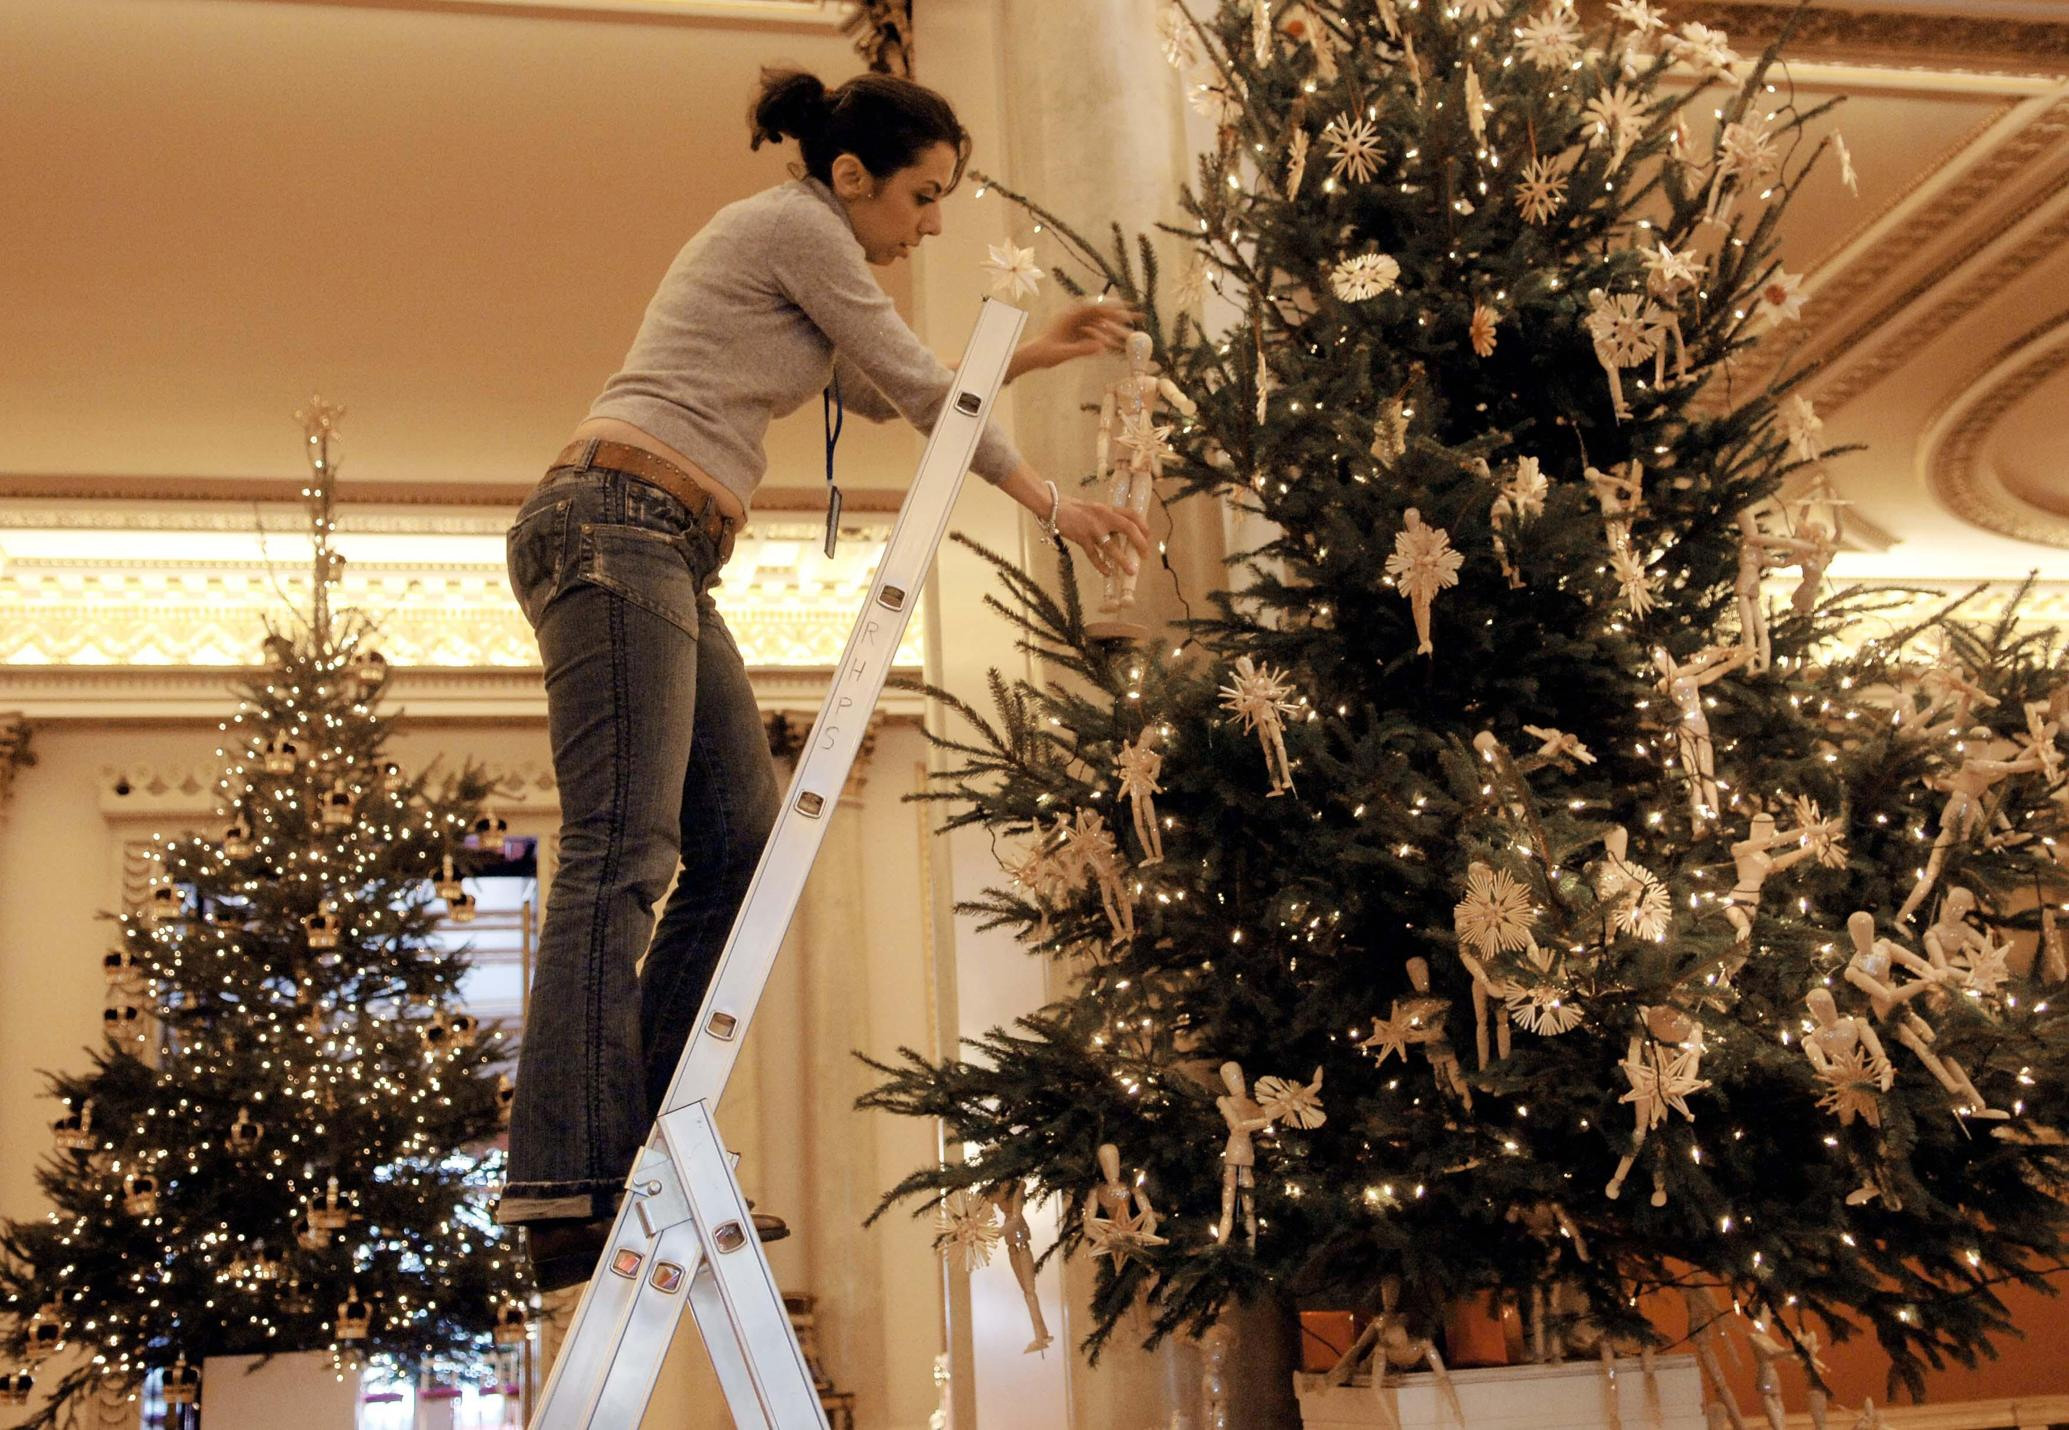 STANDALONE PHOTO  Haleh Niazi of Chelsea College of Art & Design helps decorate a christmas tree in Buckingham Palace today in preparation for tomorrow's young acheivers reception hosted by the Queen and other members of the Royal family.   (Photo by Stefan Rousseau - PA Images/PA Images via Getty Images)